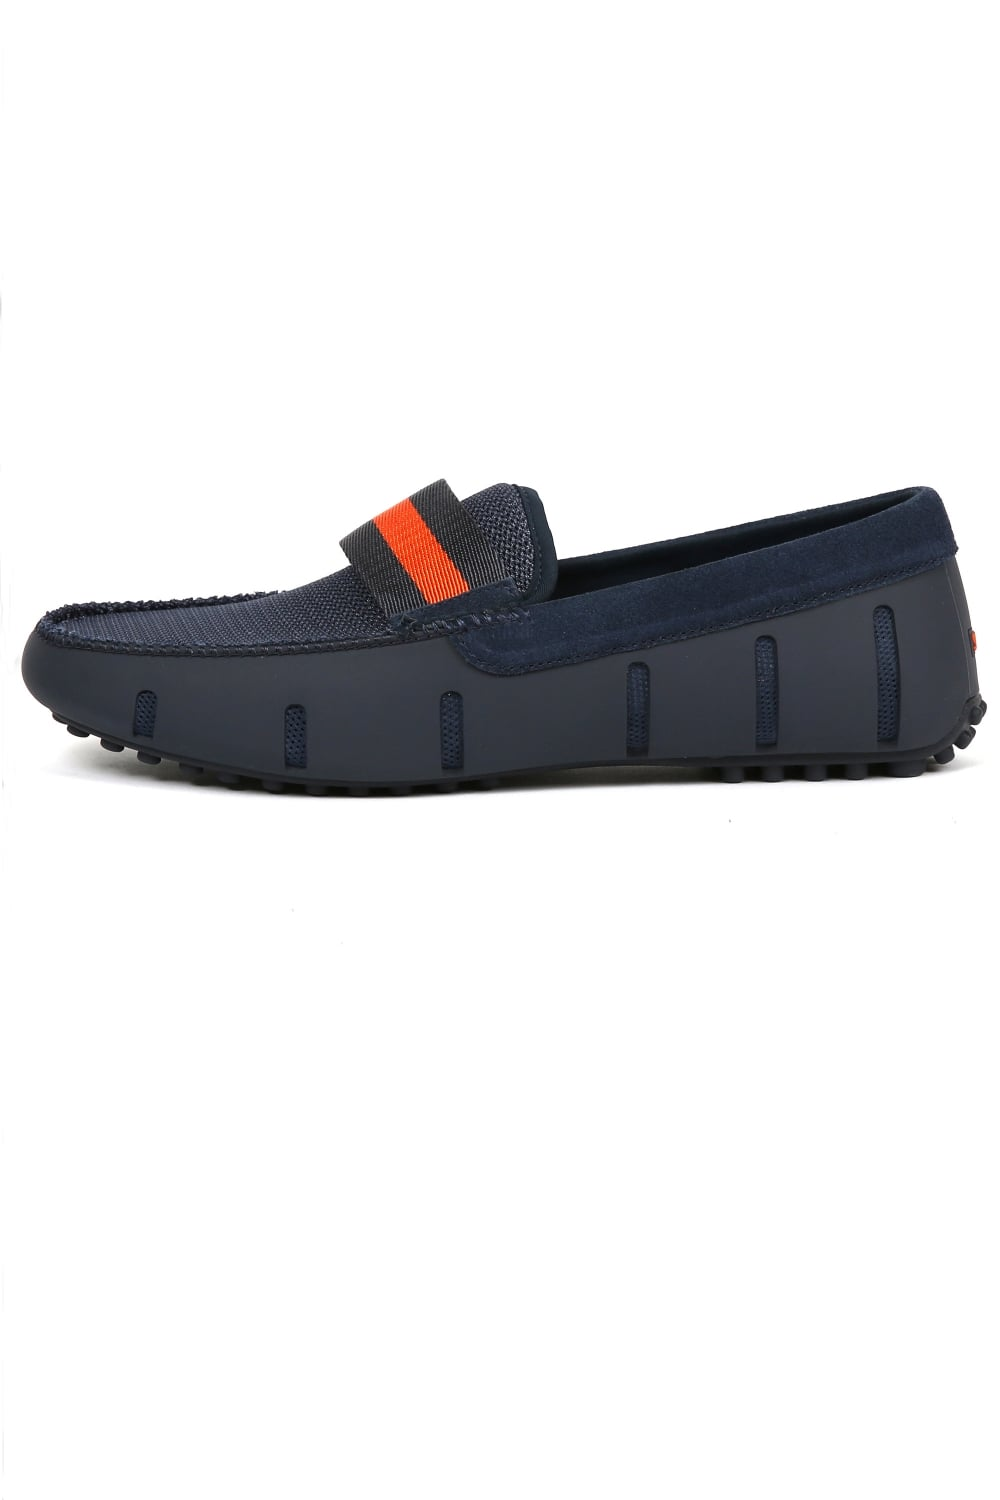 wholesale price new style & luxury Discover Webbing Driver Loafers Navy